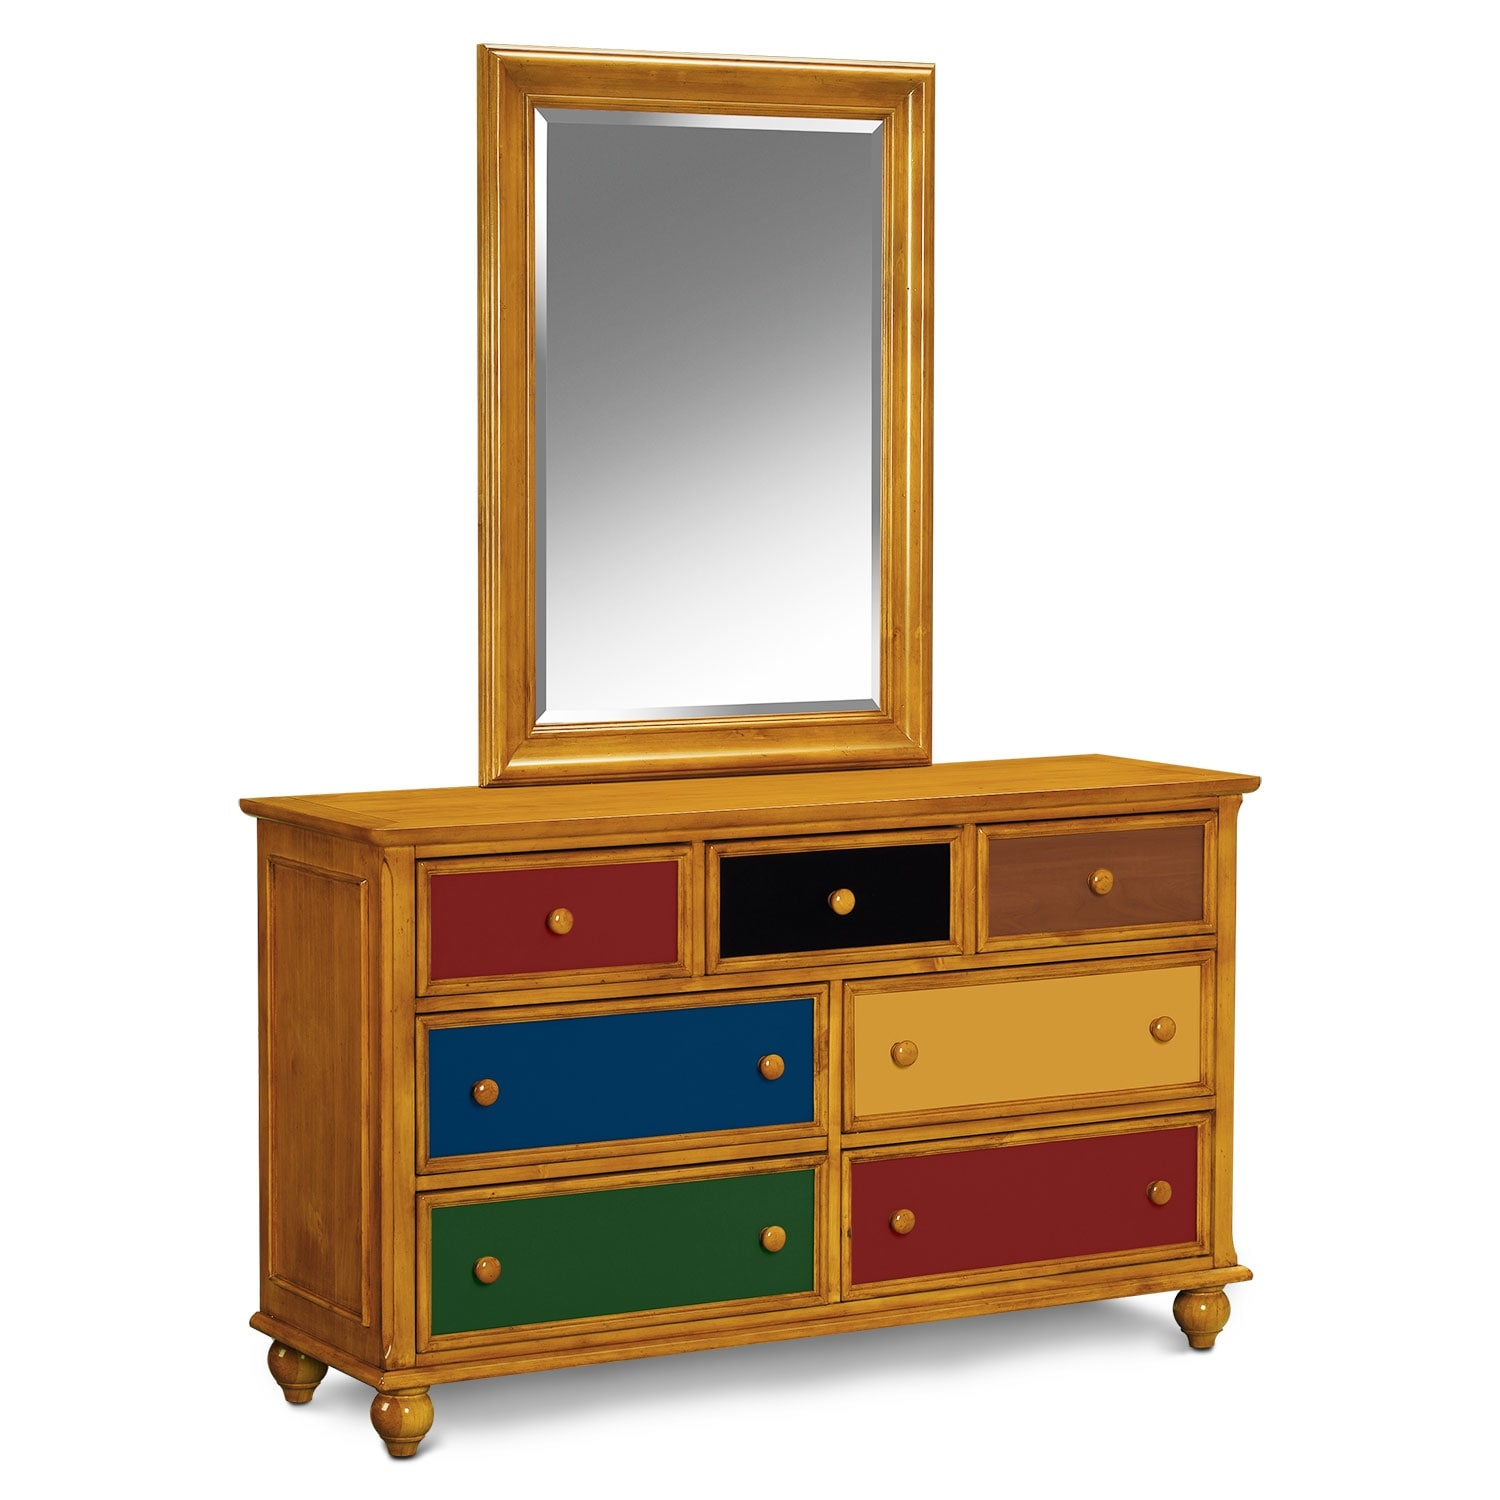 Kids Furniture - Colorworks Dresser and Mirror - Honey Pine